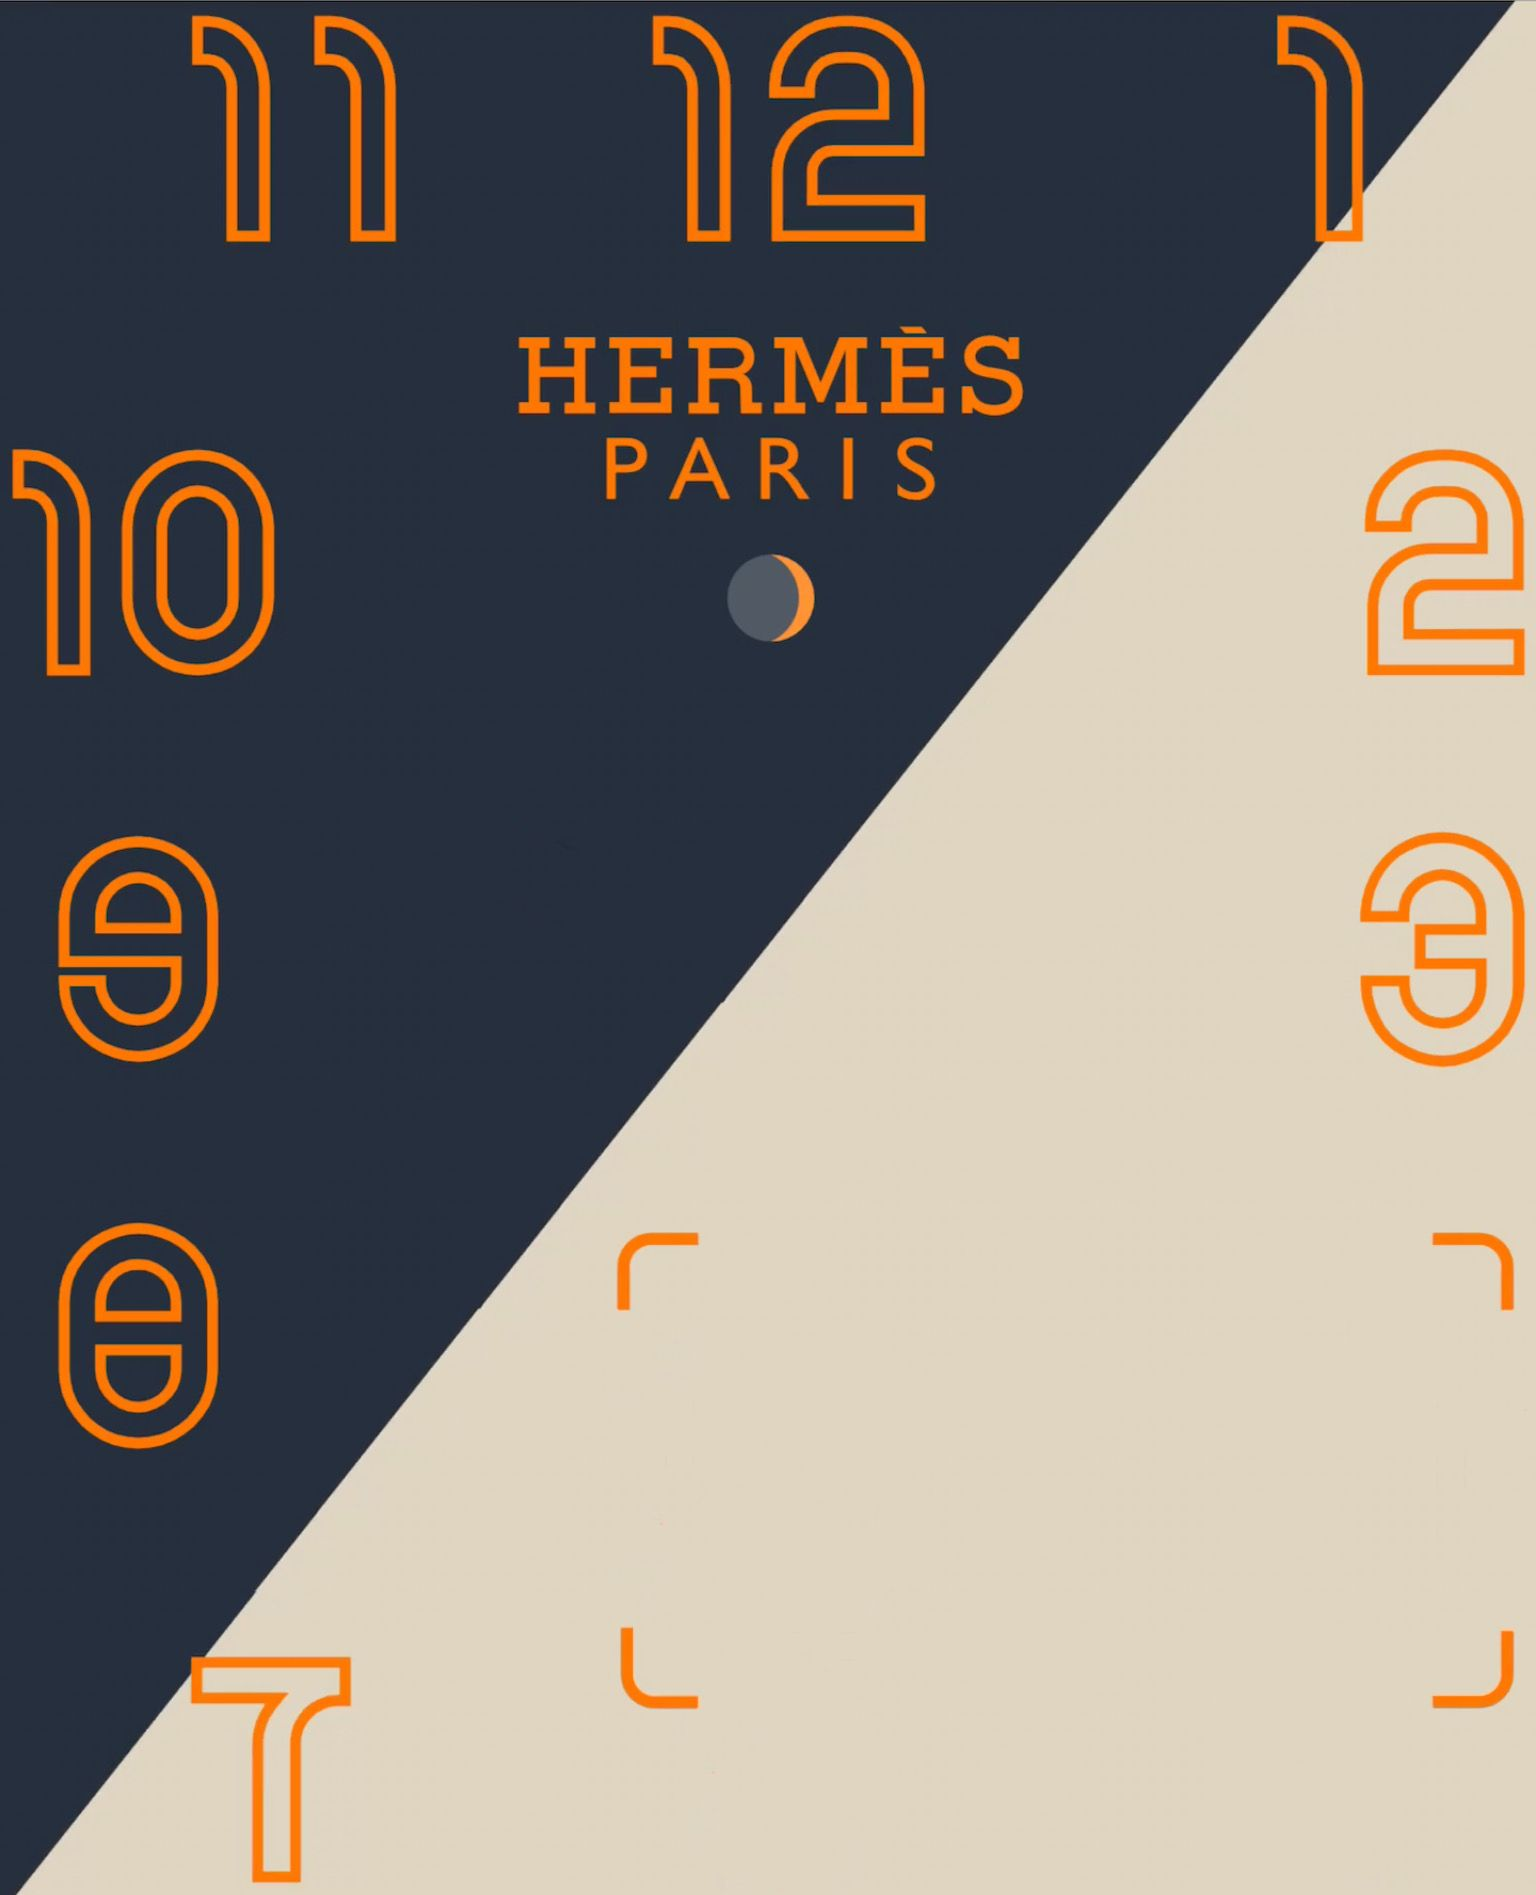 HERMÈS PARIS APPLE WATCH FACE